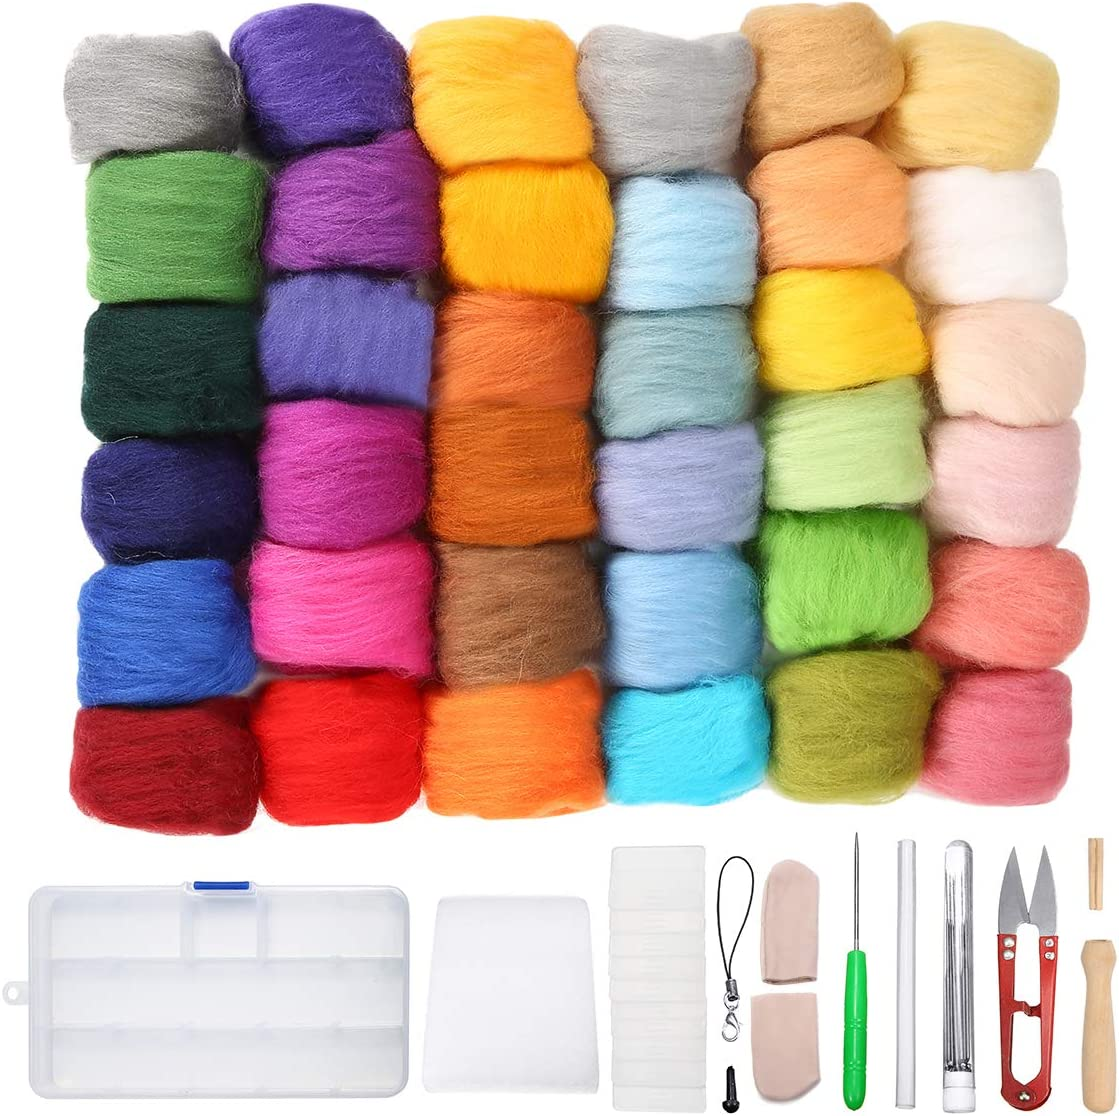 Complete Needle Felting Starter Kit with Basic Felt Tools and Supplies Wool Fibre Hand Spinning DIY. Anpro Needle Felting Kit 45 Colors Wool Roving Roving Felting